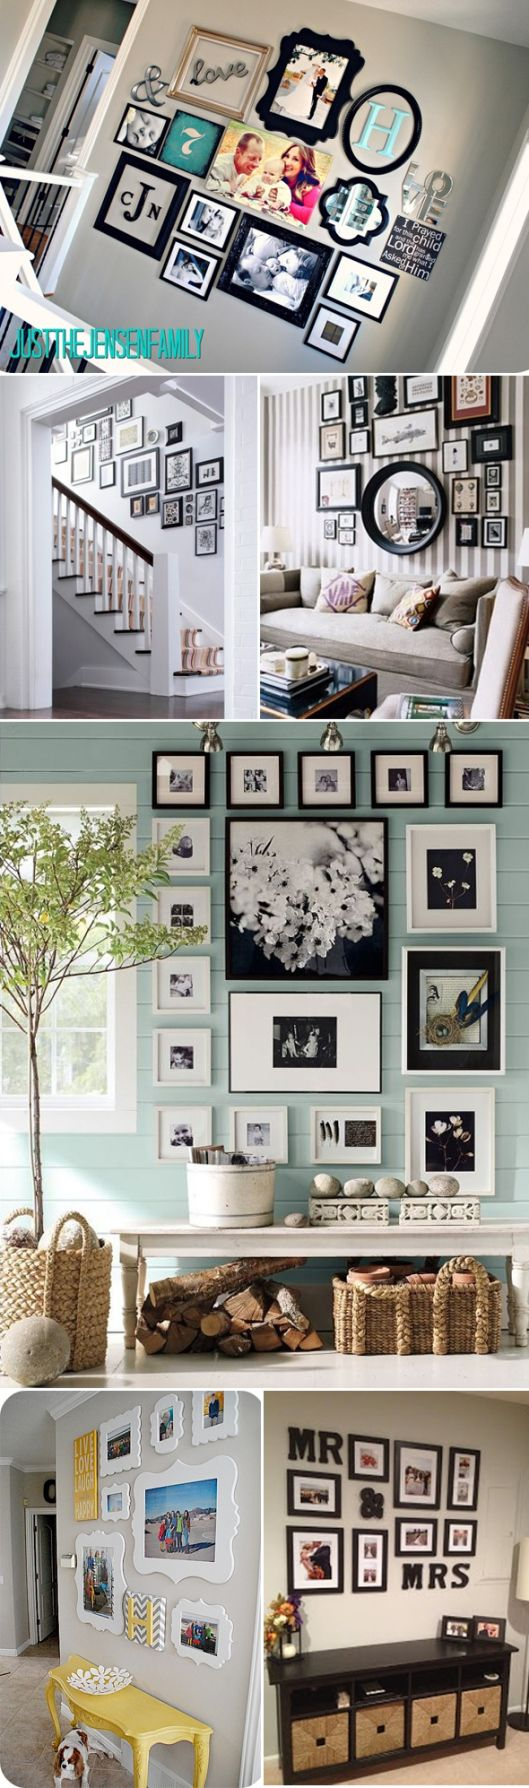 Awesome gallery walls